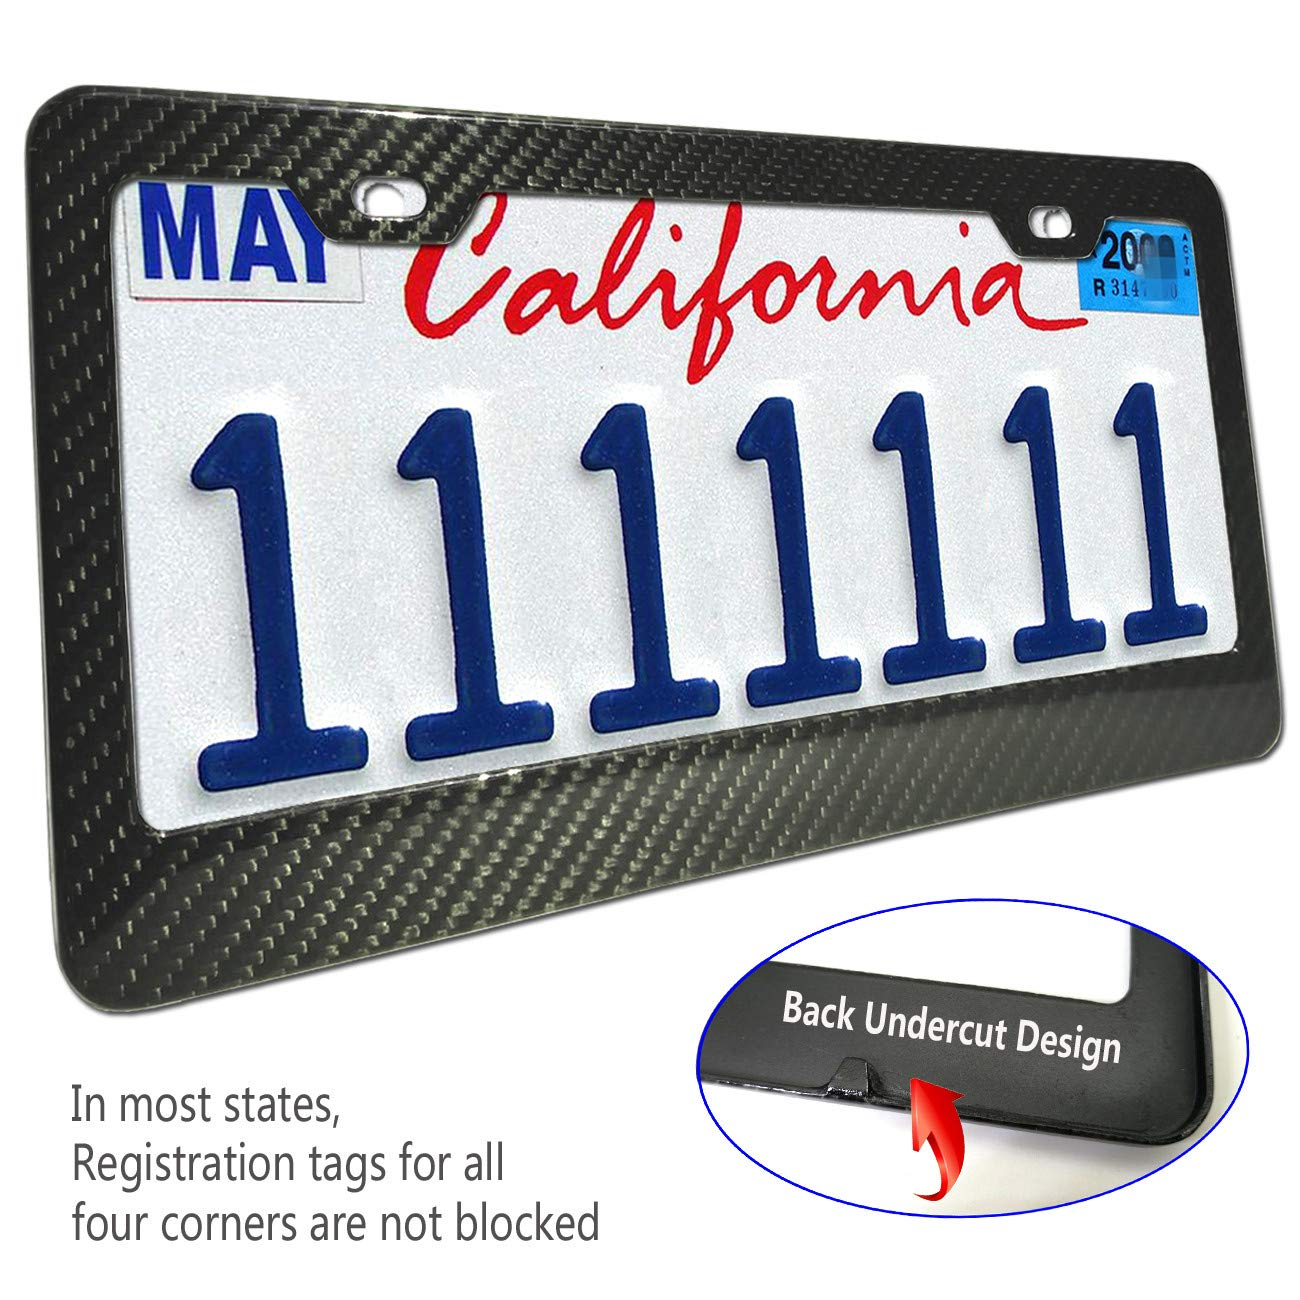 USA Flag Plate Frame for Women Stainless Steel Anti Theft Screws Finest AB Rhinestone Crystal Bling Flag License Plate Frame Luxury Bling Rhinestone Premium Stainless Steel License Plate Frames